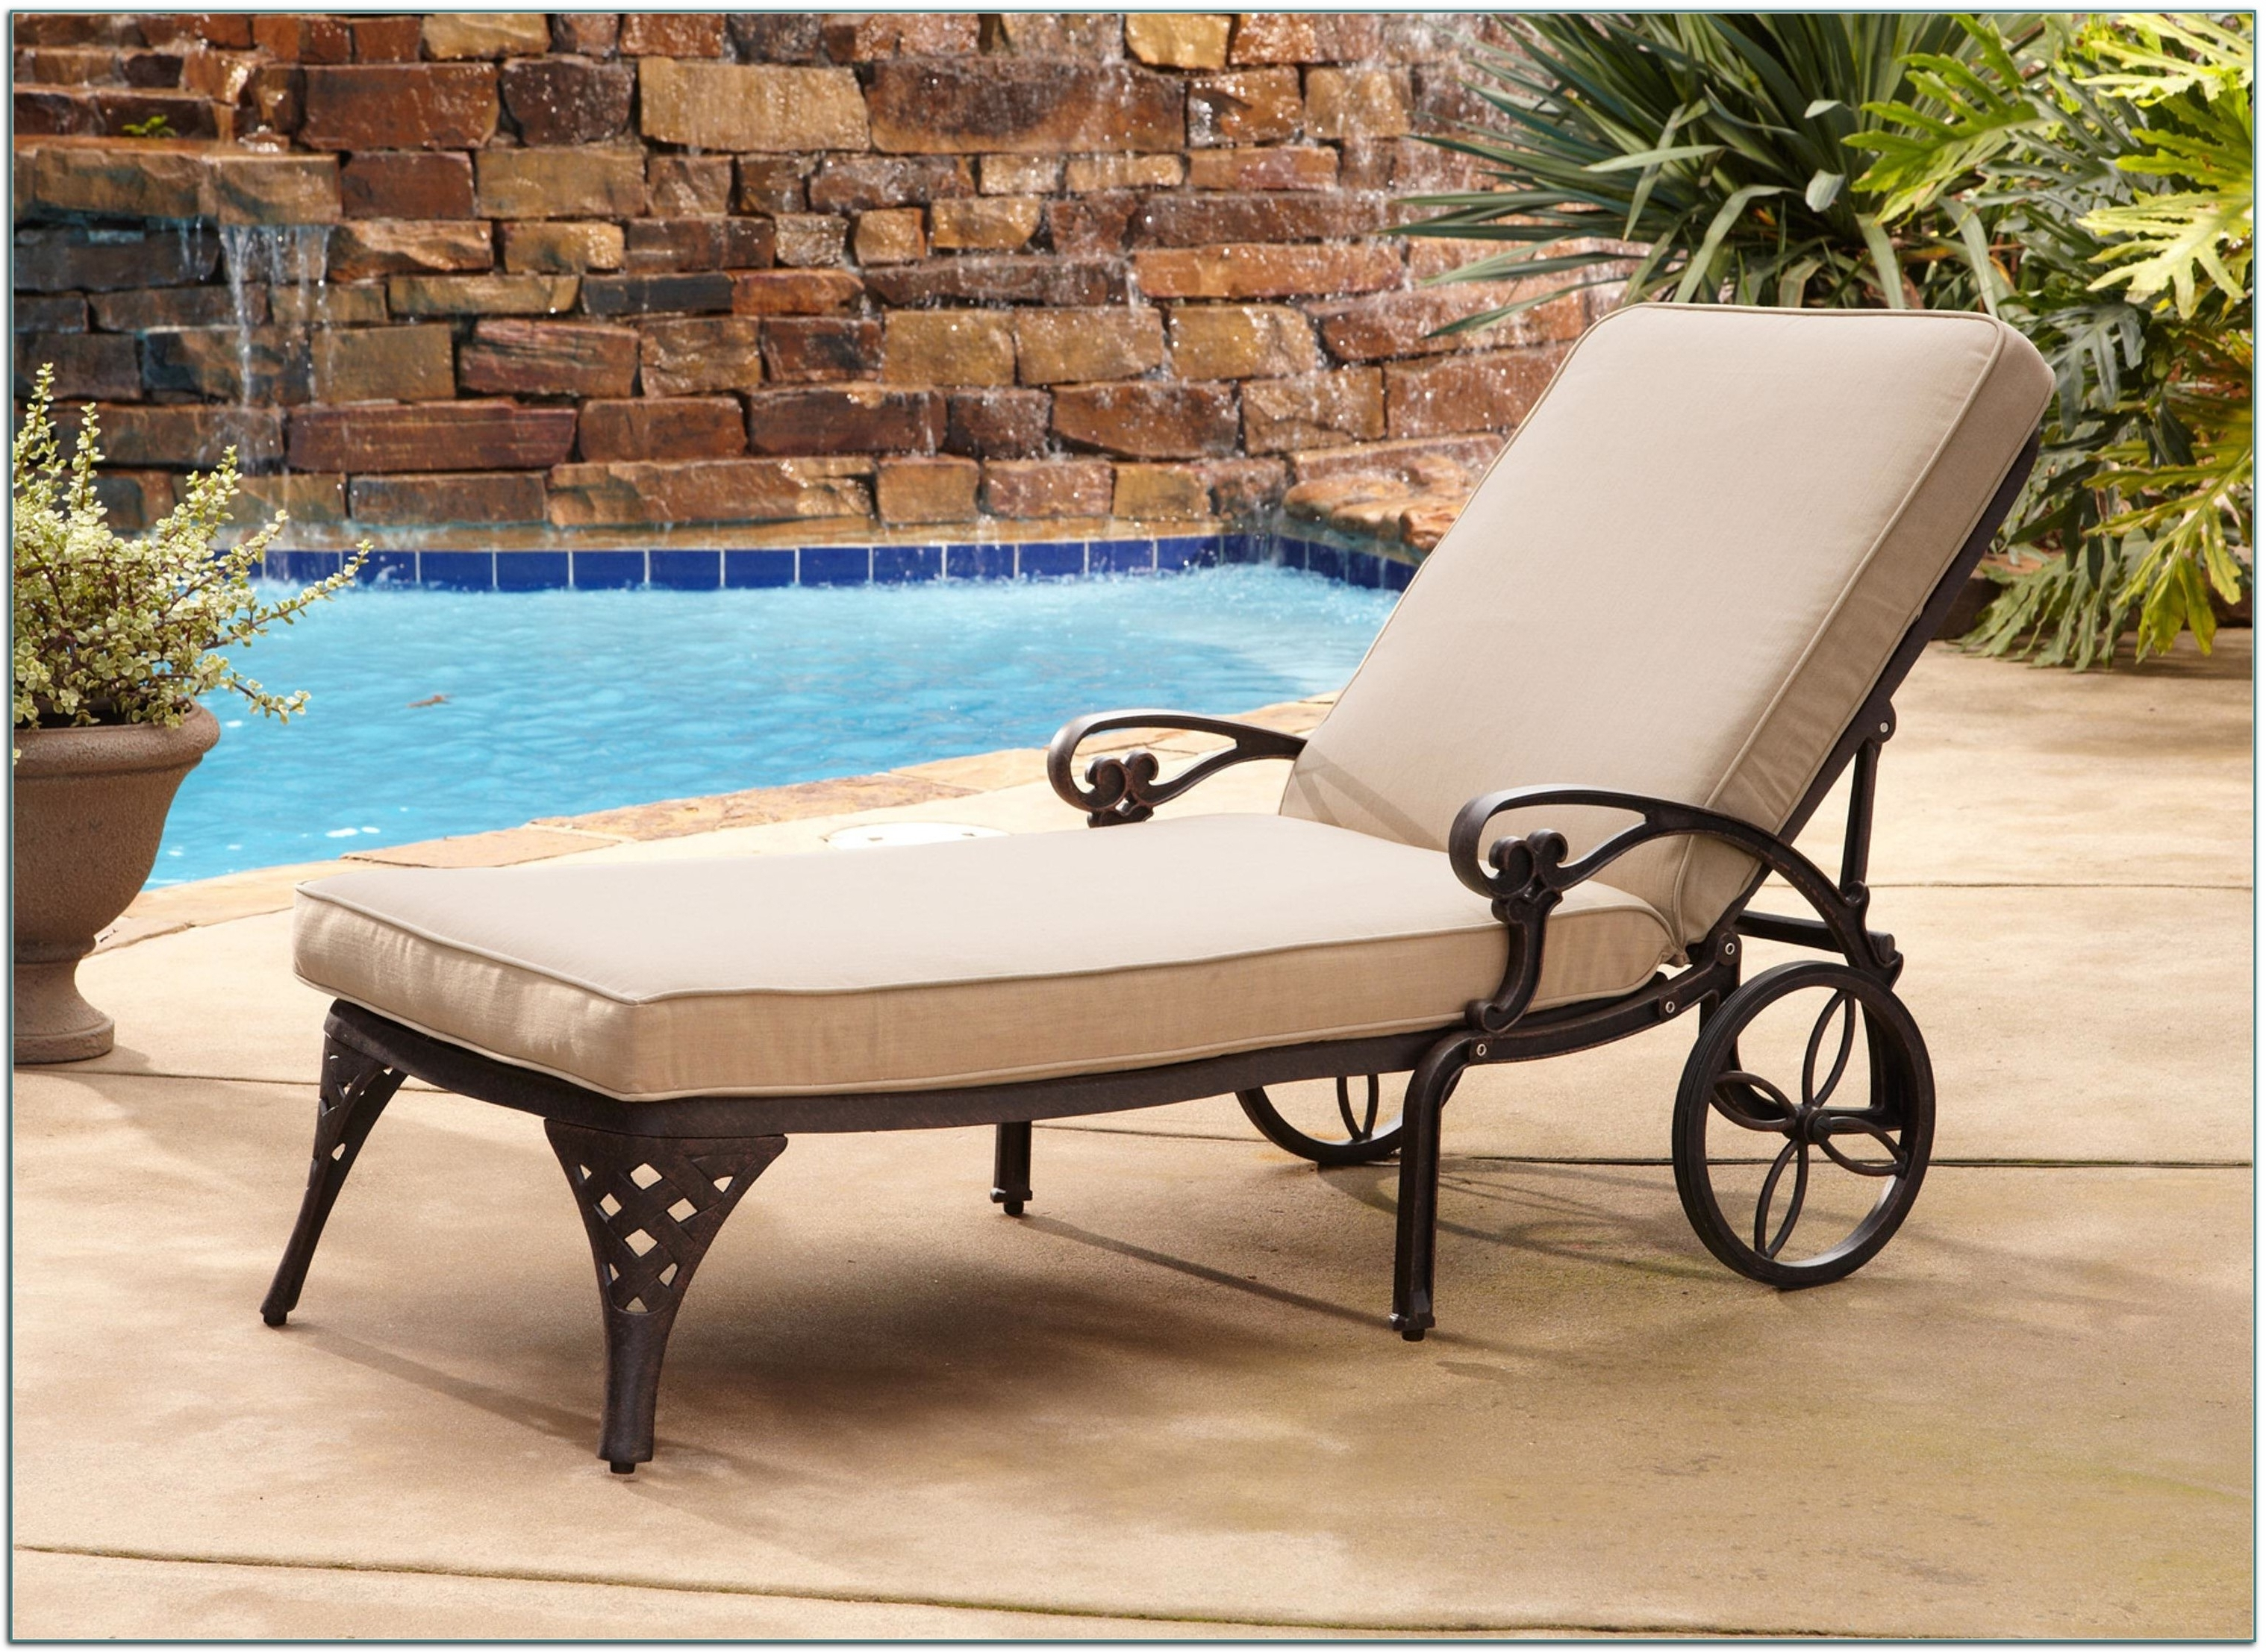 Lakeport Outdoor Adjustable Chaise Lounge Chairs Pertaining To Most Popular Aluminum Poolside Lounge Chairs • Lounge Chairs Ideas (View 8 of 15)